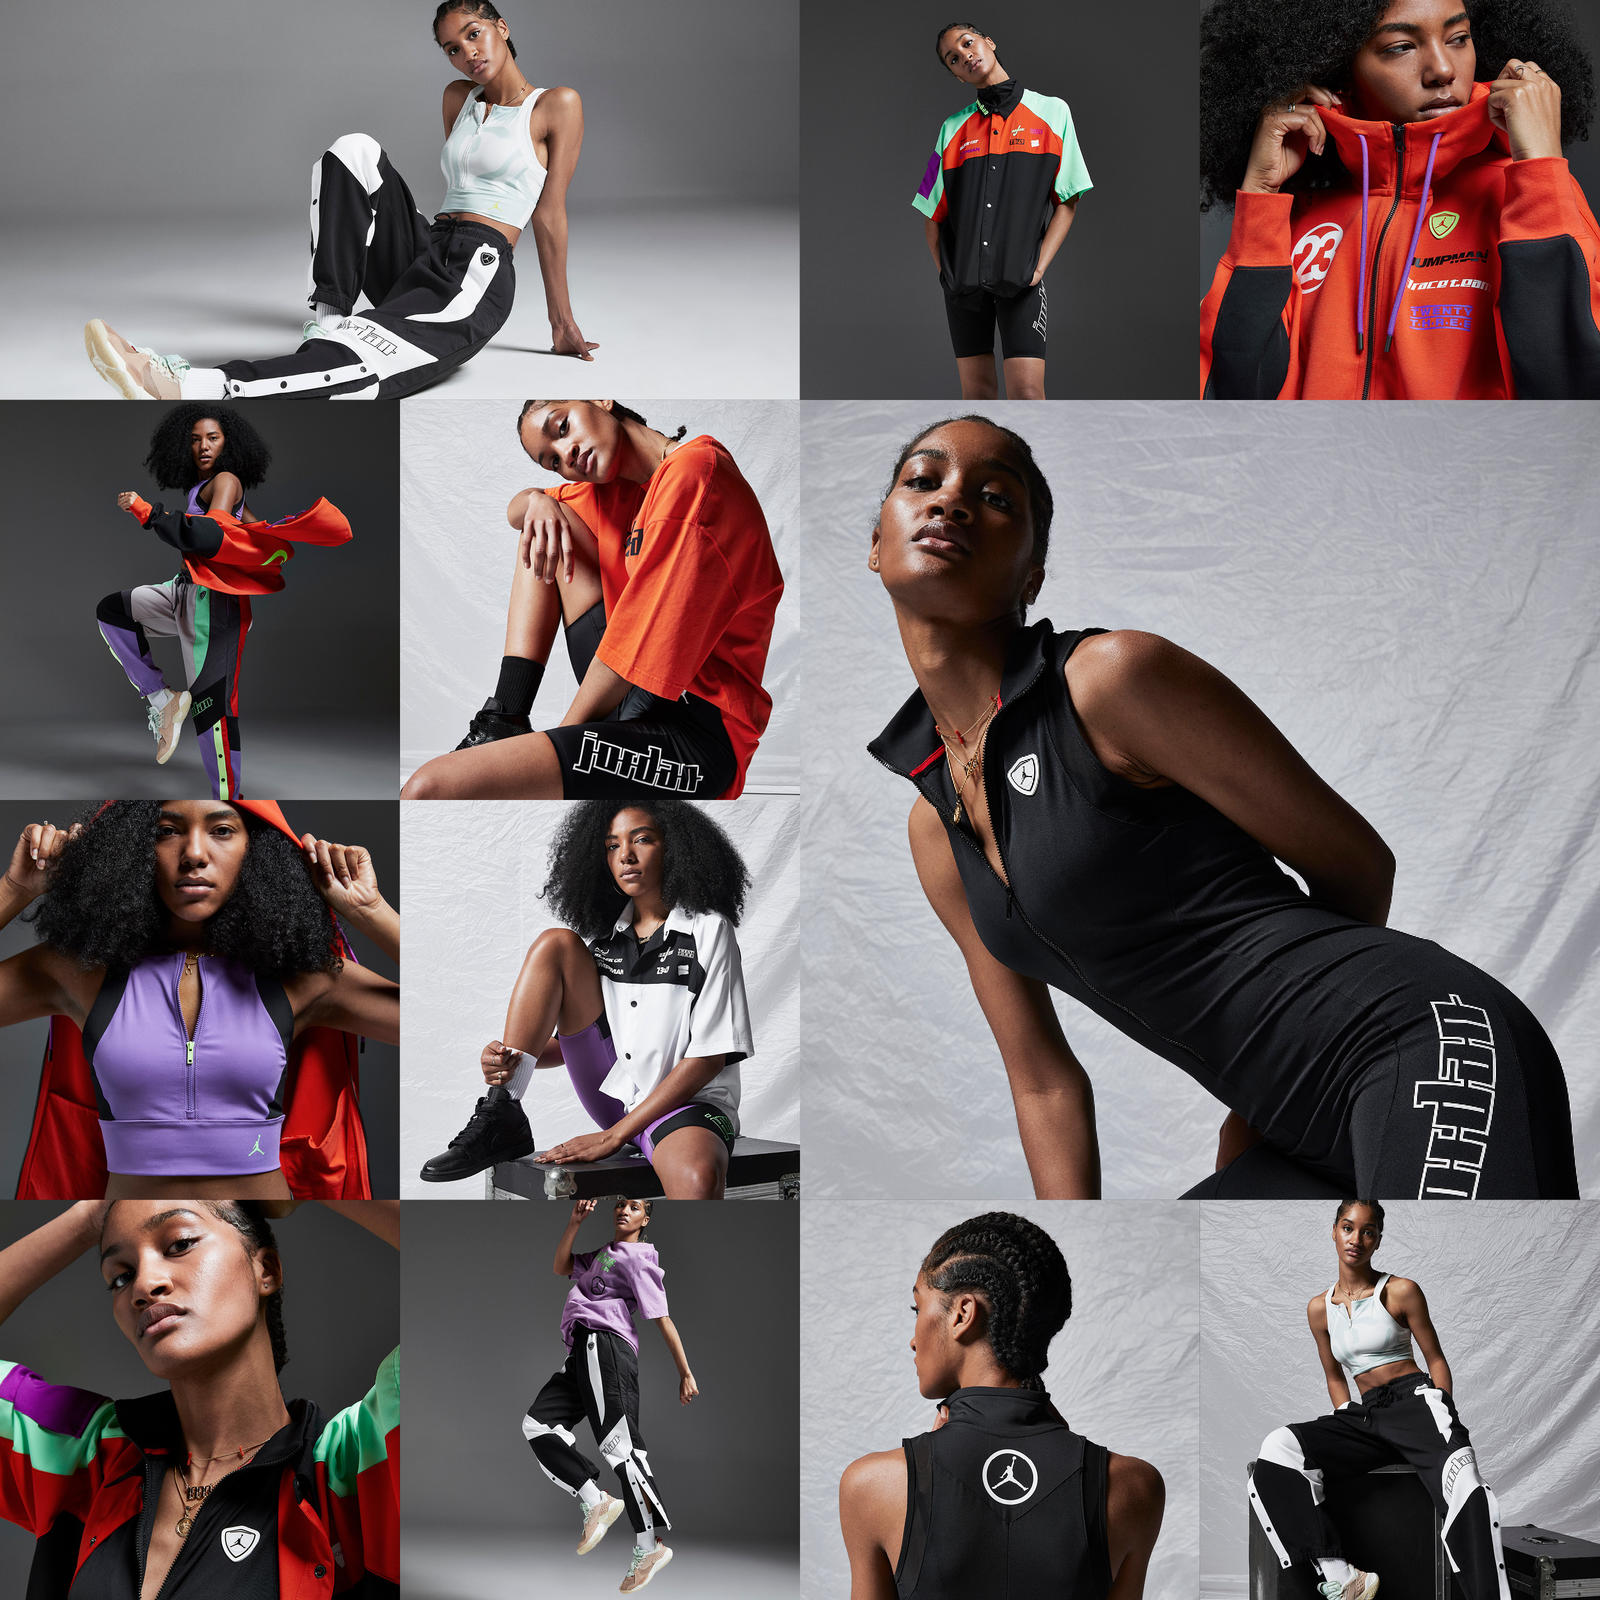 Jordan Womens's Moto Collection - WhyNot Mag